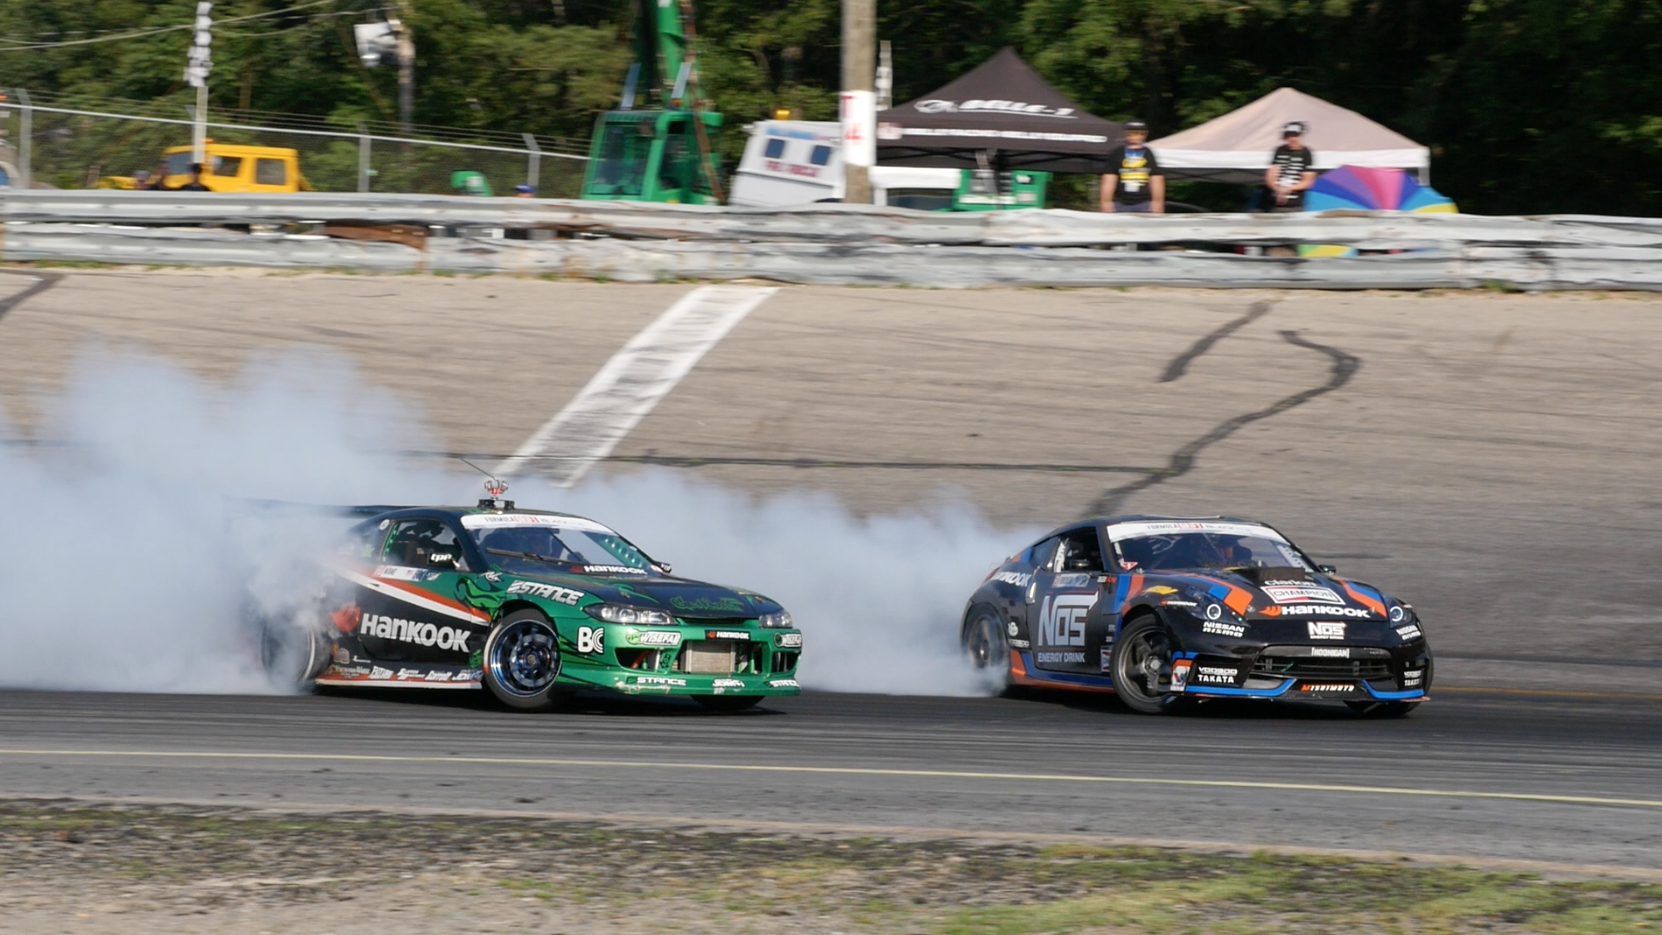 Video: Formula Drift New Jersey: Behind the scenes